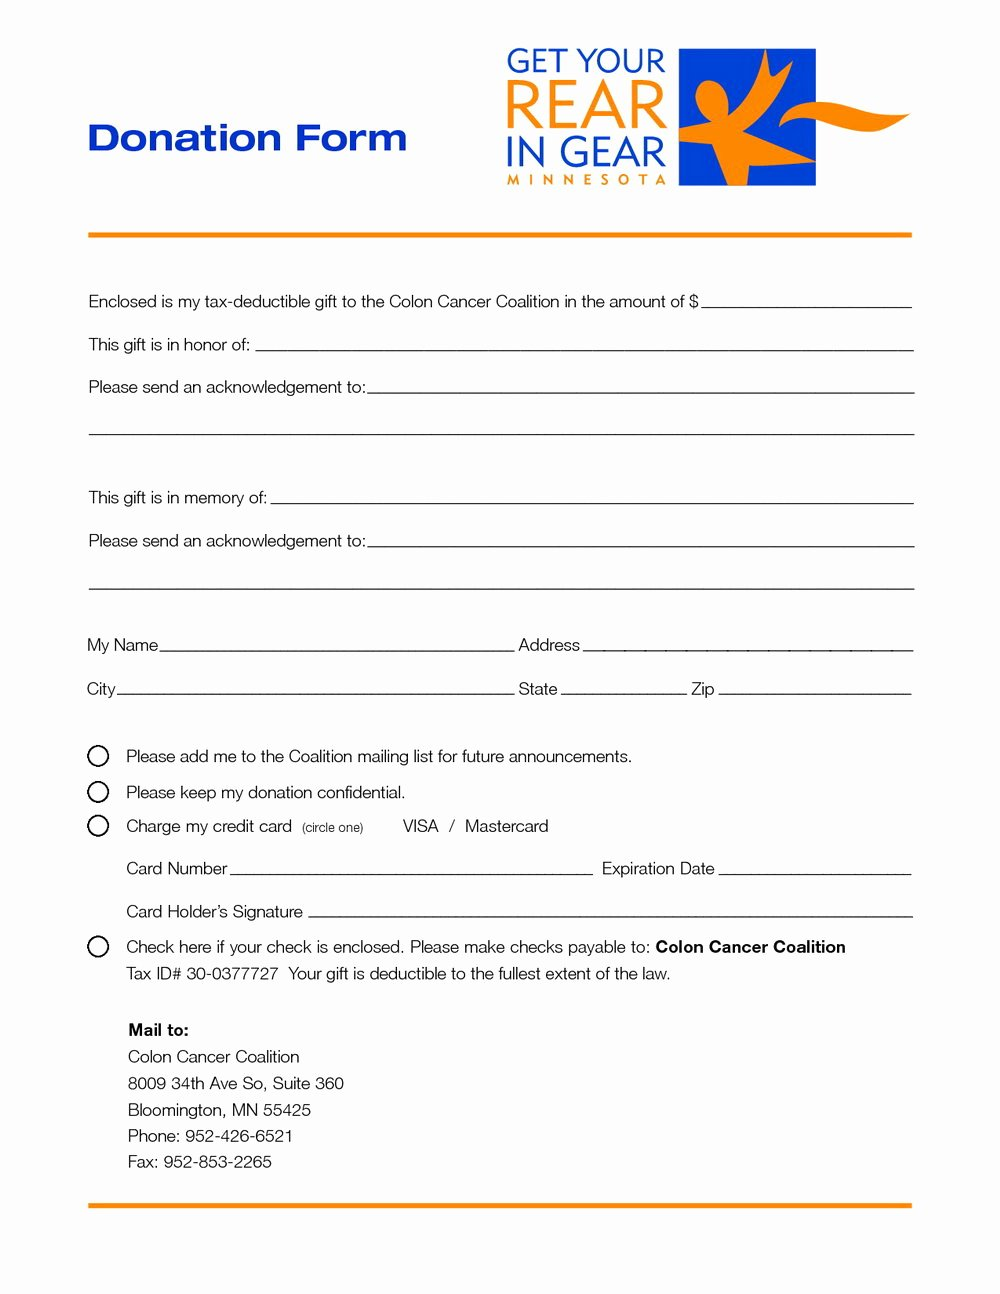 Donation form Template Word Elegant Blood Donation Application form forms 8228